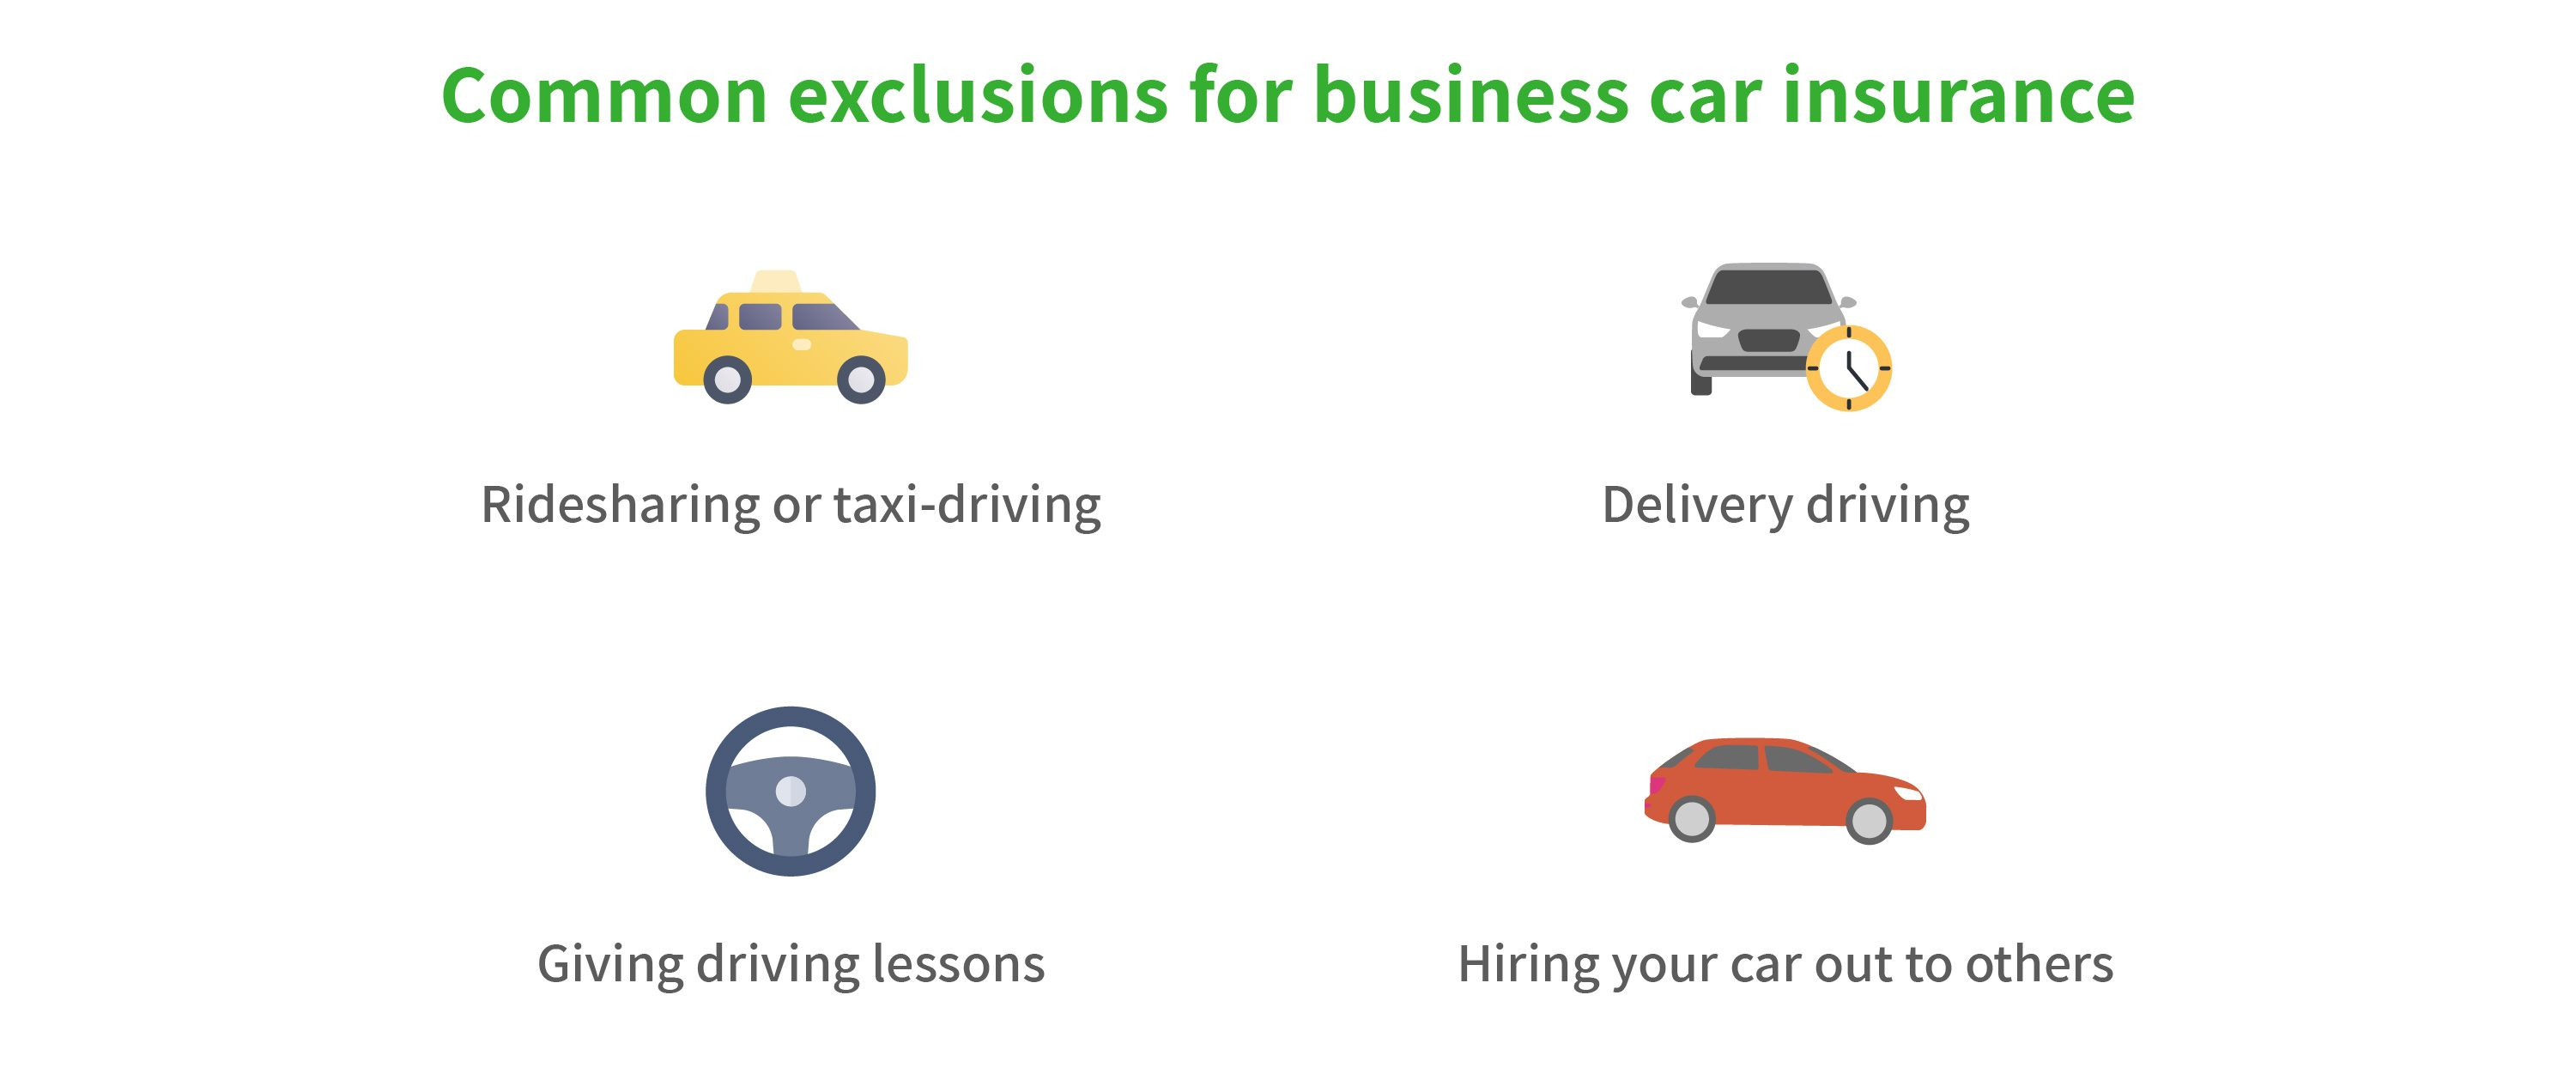 Graphic illustrating business car insurance exclusions, including for ridesharing, delivery driving, giving driving lessons and hiring your car out to others.